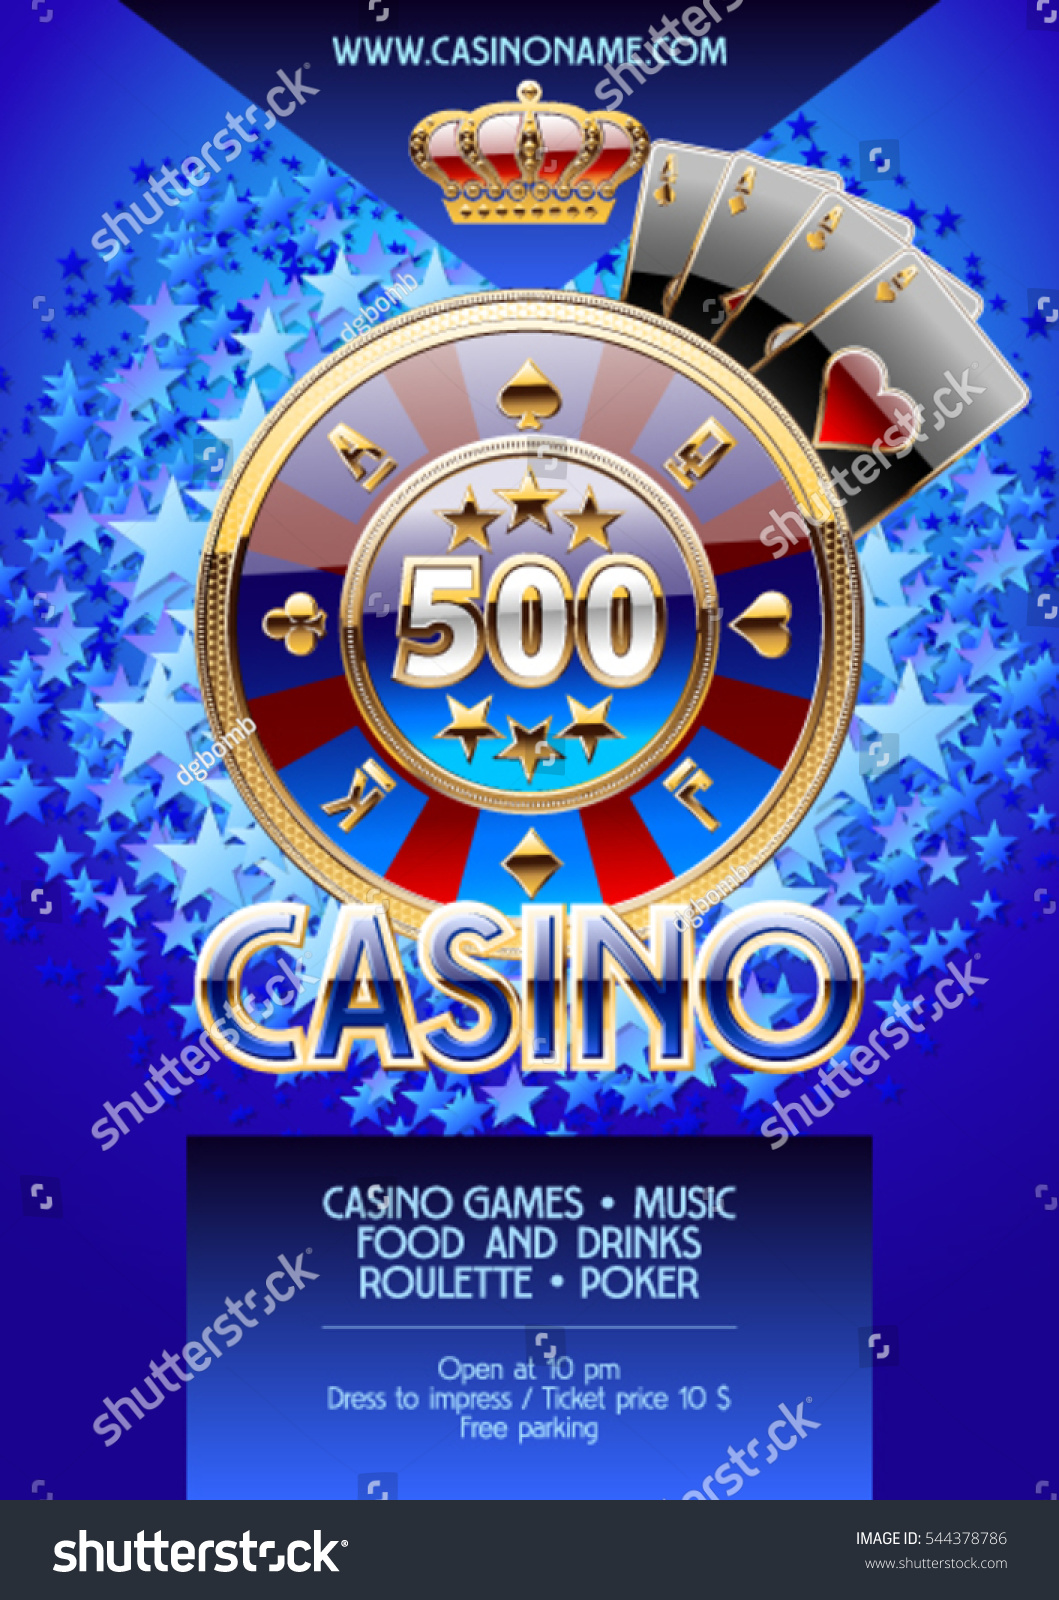 vector template promo flyer casino night stock vector  vector template promo flyer for casino night party